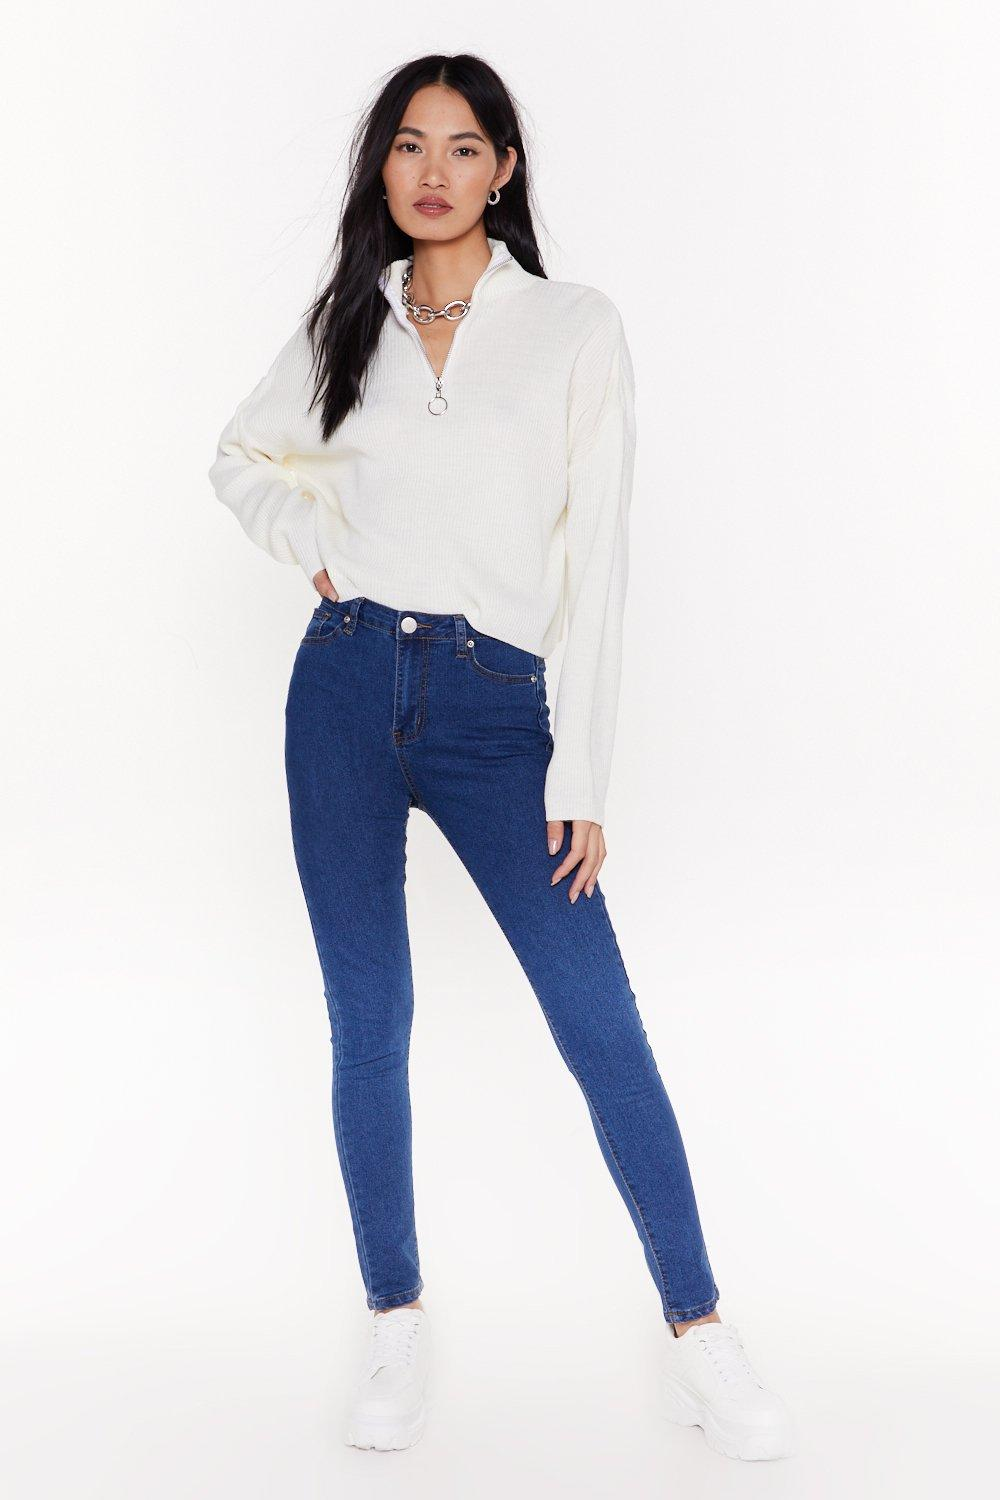 5cc4c908820 Treat 'Em Tight High-Waisted Skinny Jeans | Shop Clothes at Nasty Gal!